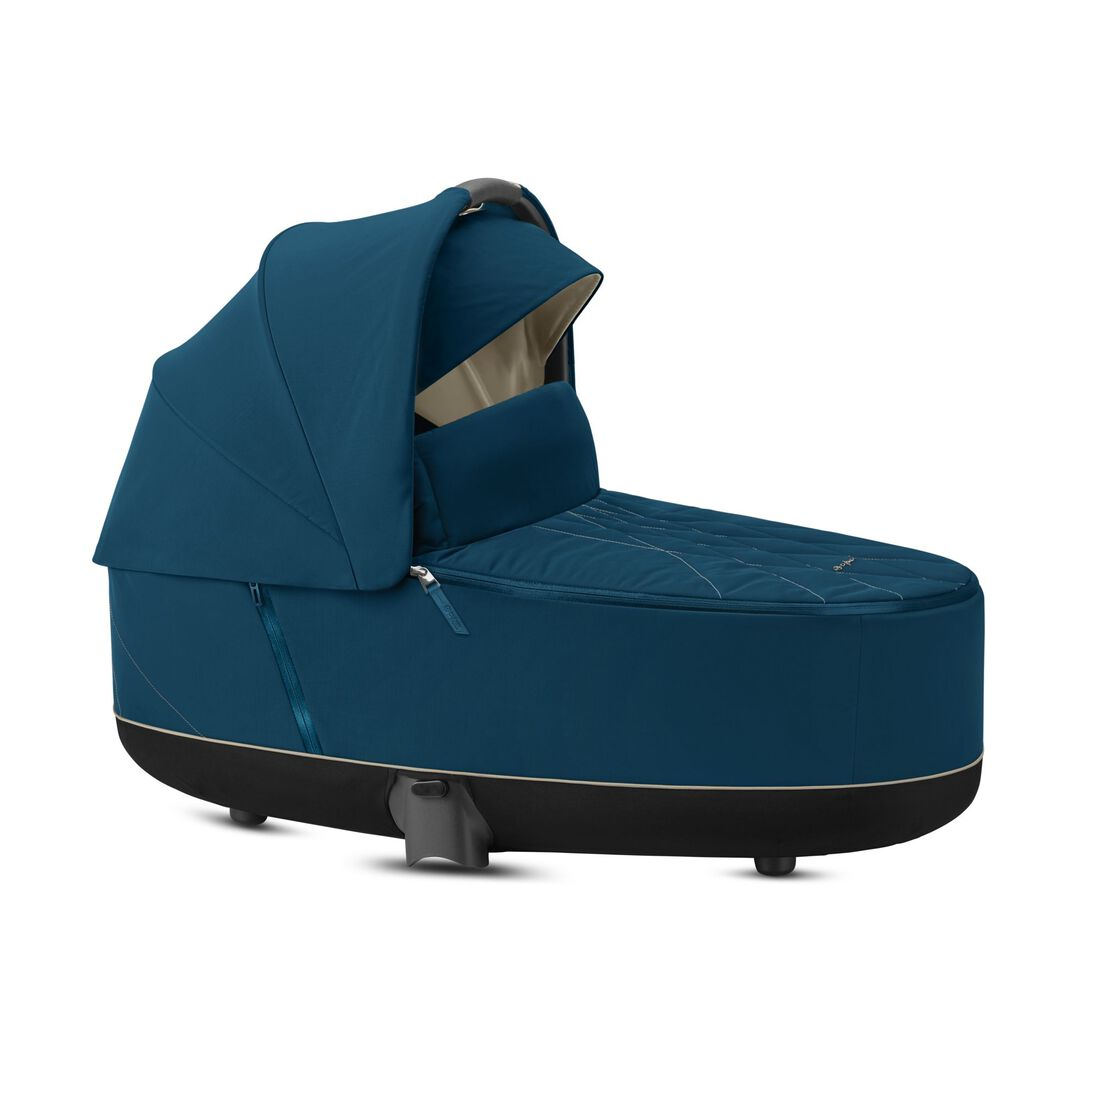 CYBEX Priam Lux Carry Cot - Mountain Blue in Mountain Blue large image number 2